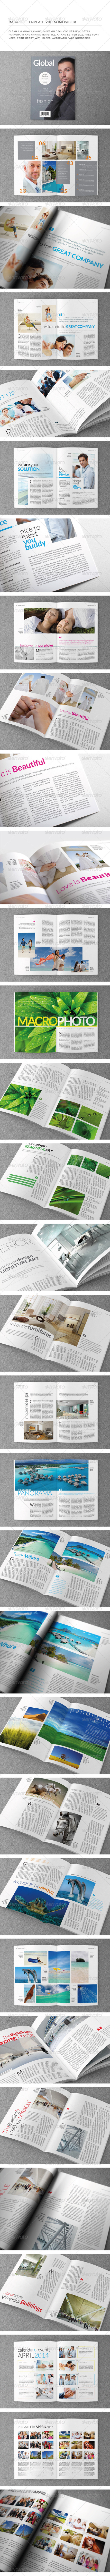 A4/Letter 50 Pages mgz (Vol. 14) - Magazines Print Templates